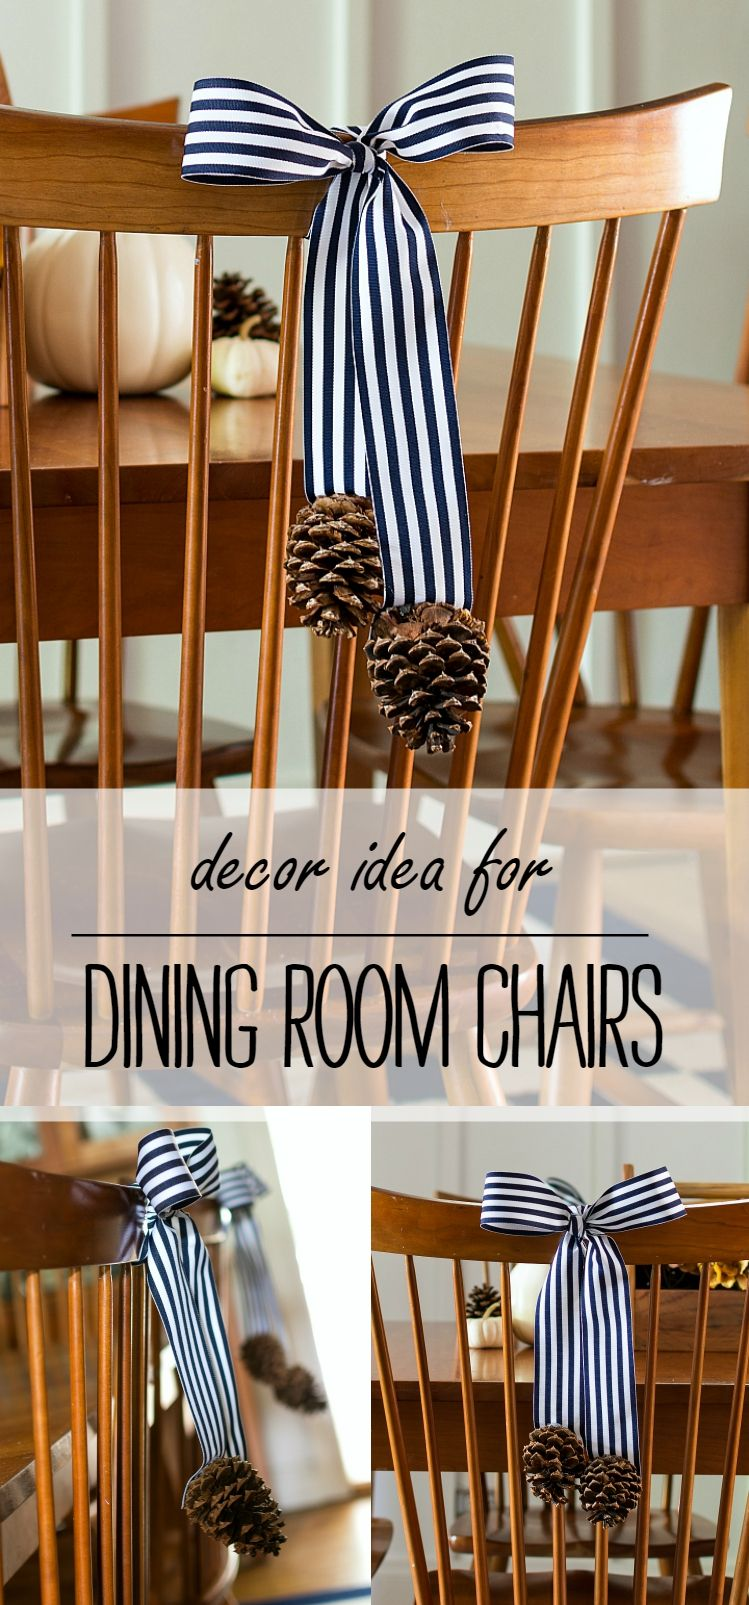 Decorating The Dining Room Chairs Dining Room Chairs Dining Room Interiors Dining Chairs Diy Decor dining room chairs